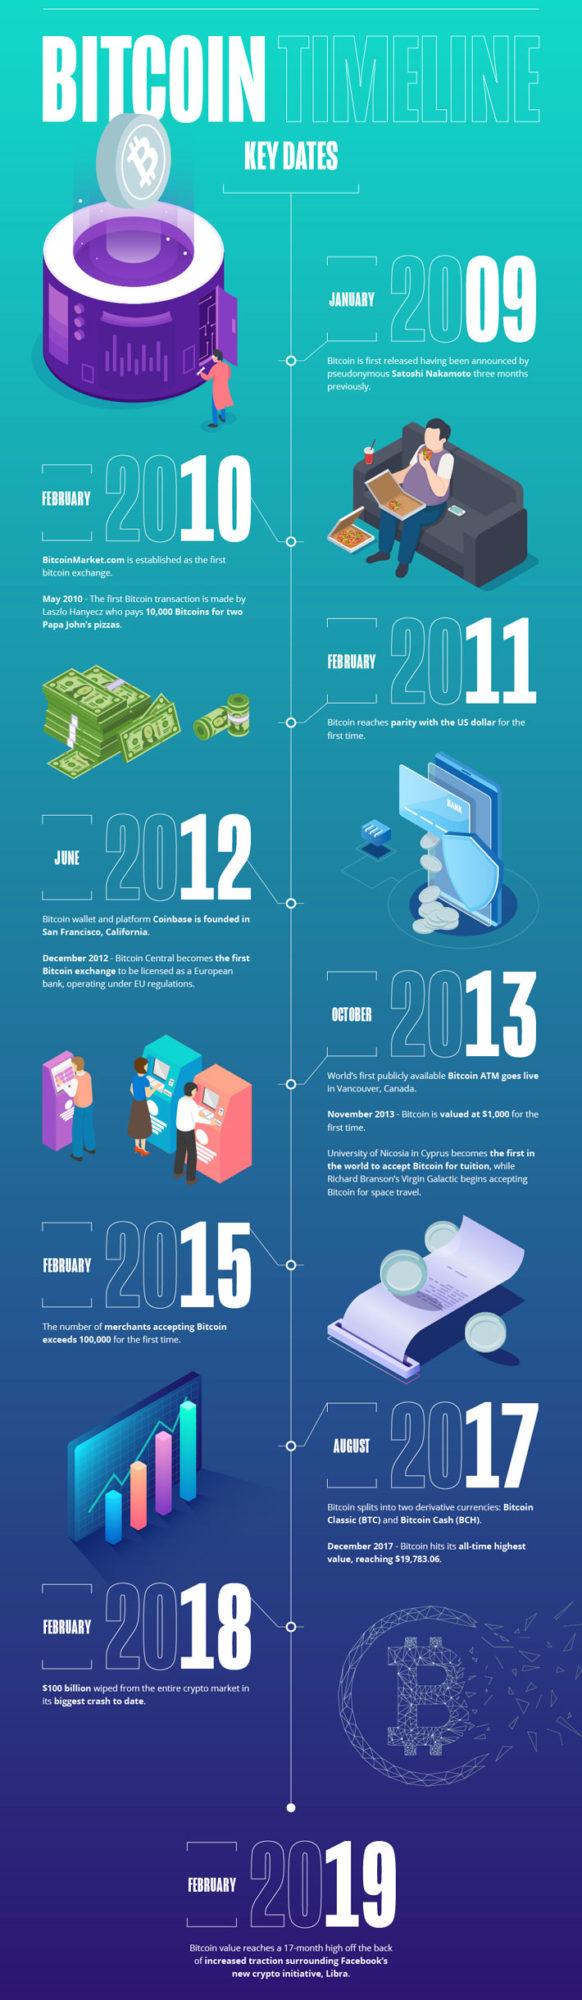 How Bitcoin Survived its First Decade timeline